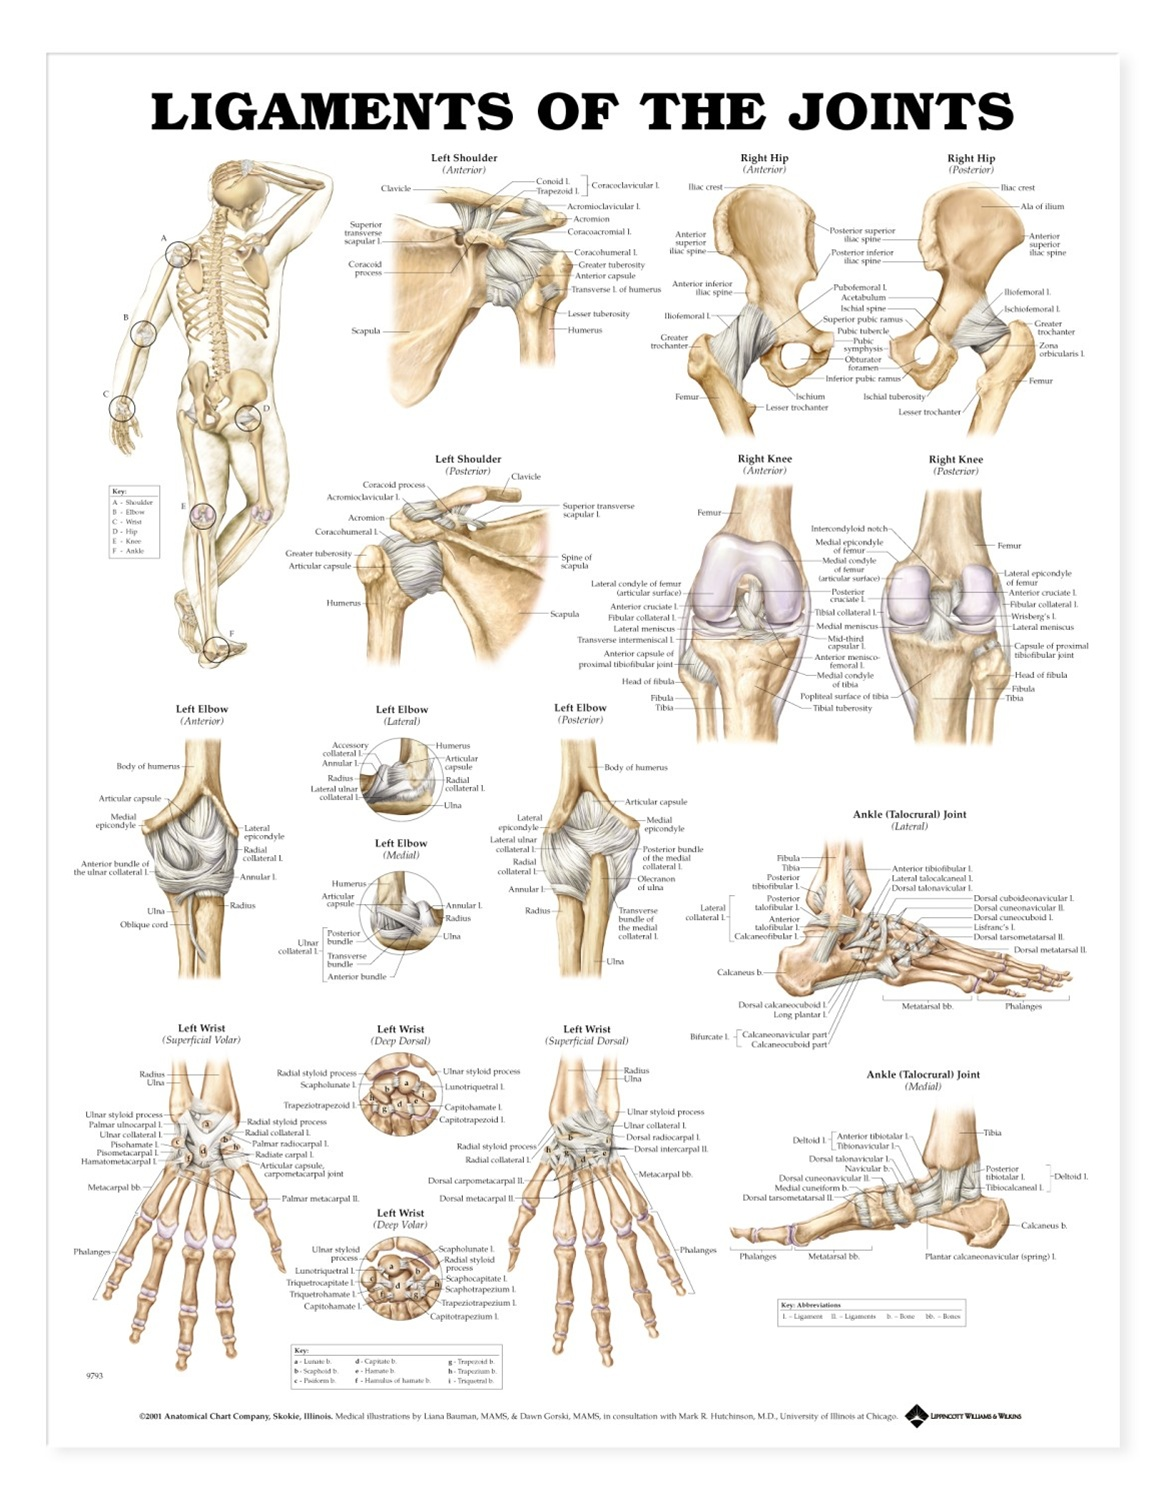 Ligaments Of The Joints Anatomical Chart Anatomy Models And